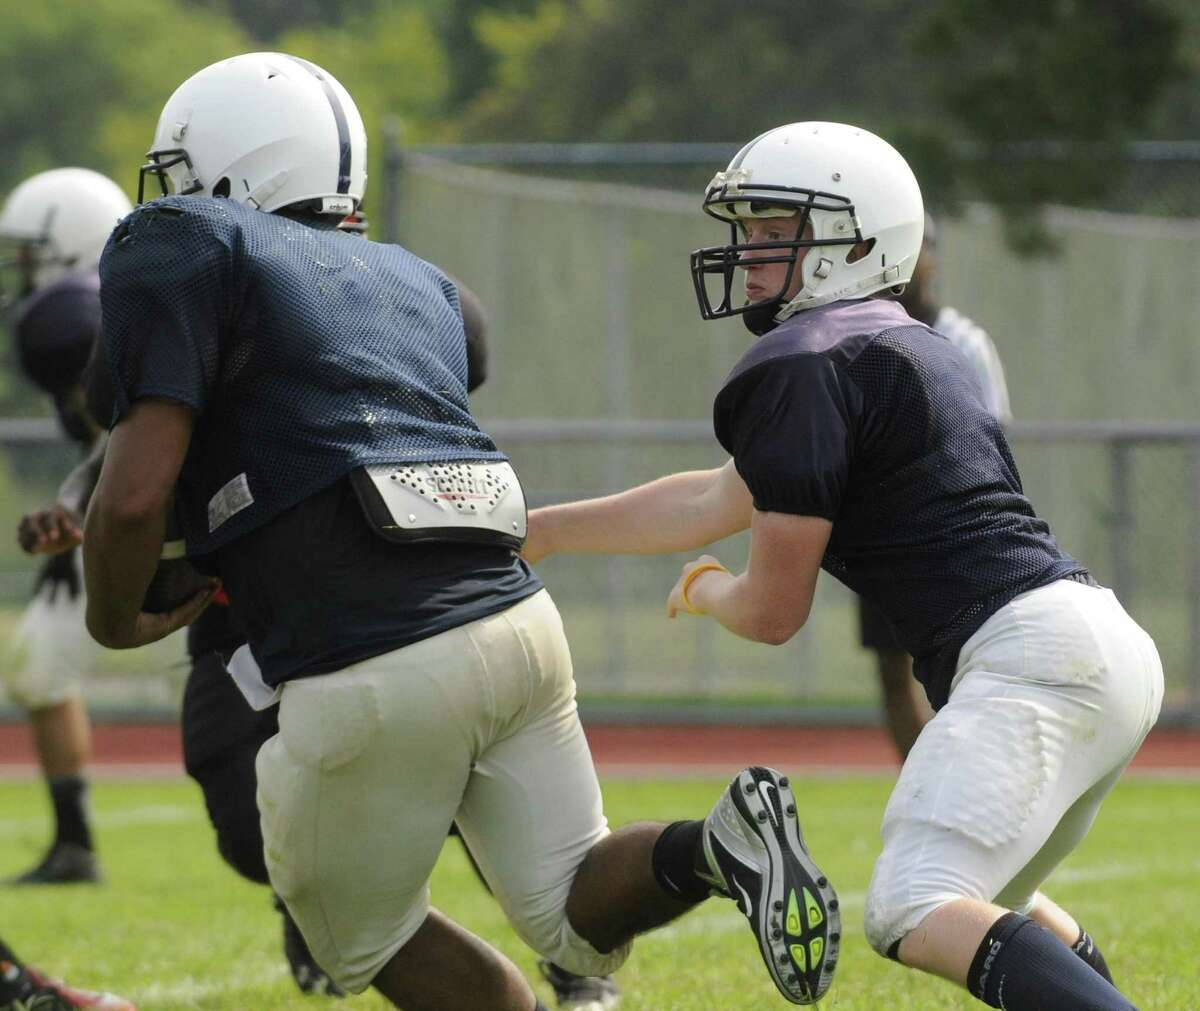 Rensselaer High School football quarterback Steve Harwood hands the ball off Seth Butle to during a scrimmage with Voorheesville in Albany, NY Saturday Aug. 25, 2012. (Michael P. Farrell/Times Union)